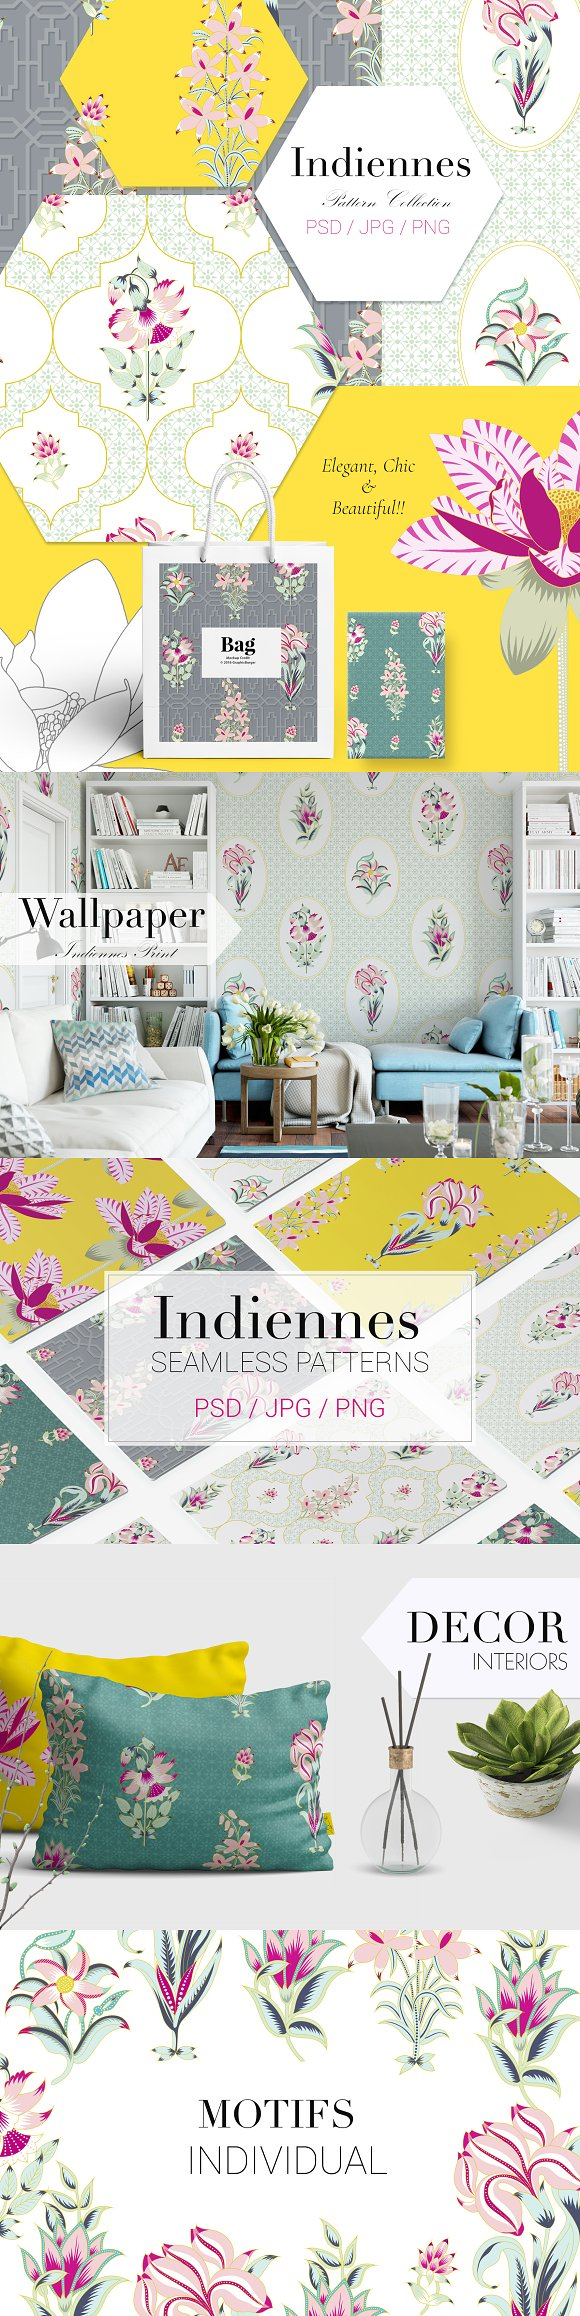 Indiennes - Exquisite Print-Graphicriver中文最全的素材分享平台